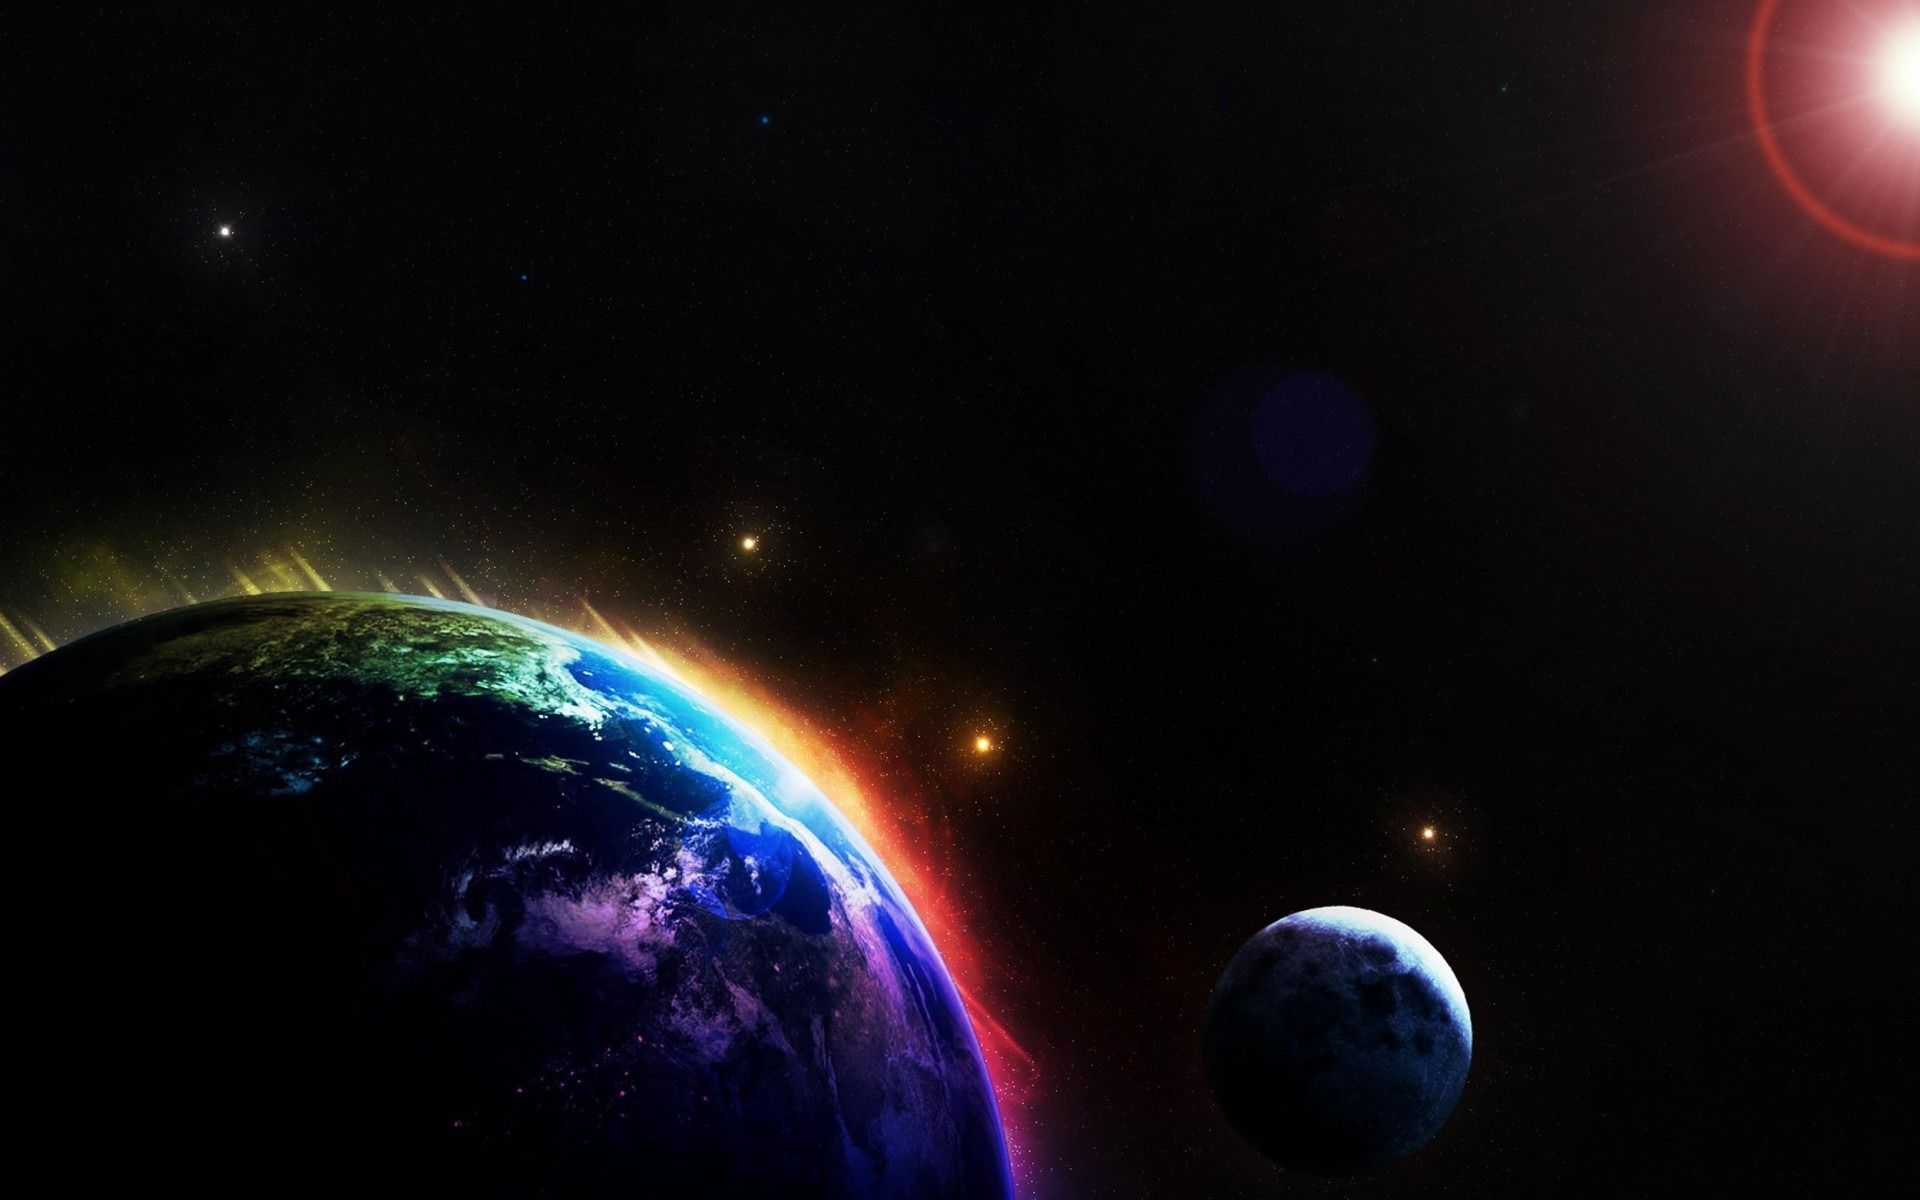 Download 1080p Space Backgrounds Free Rainbow Wallpaper